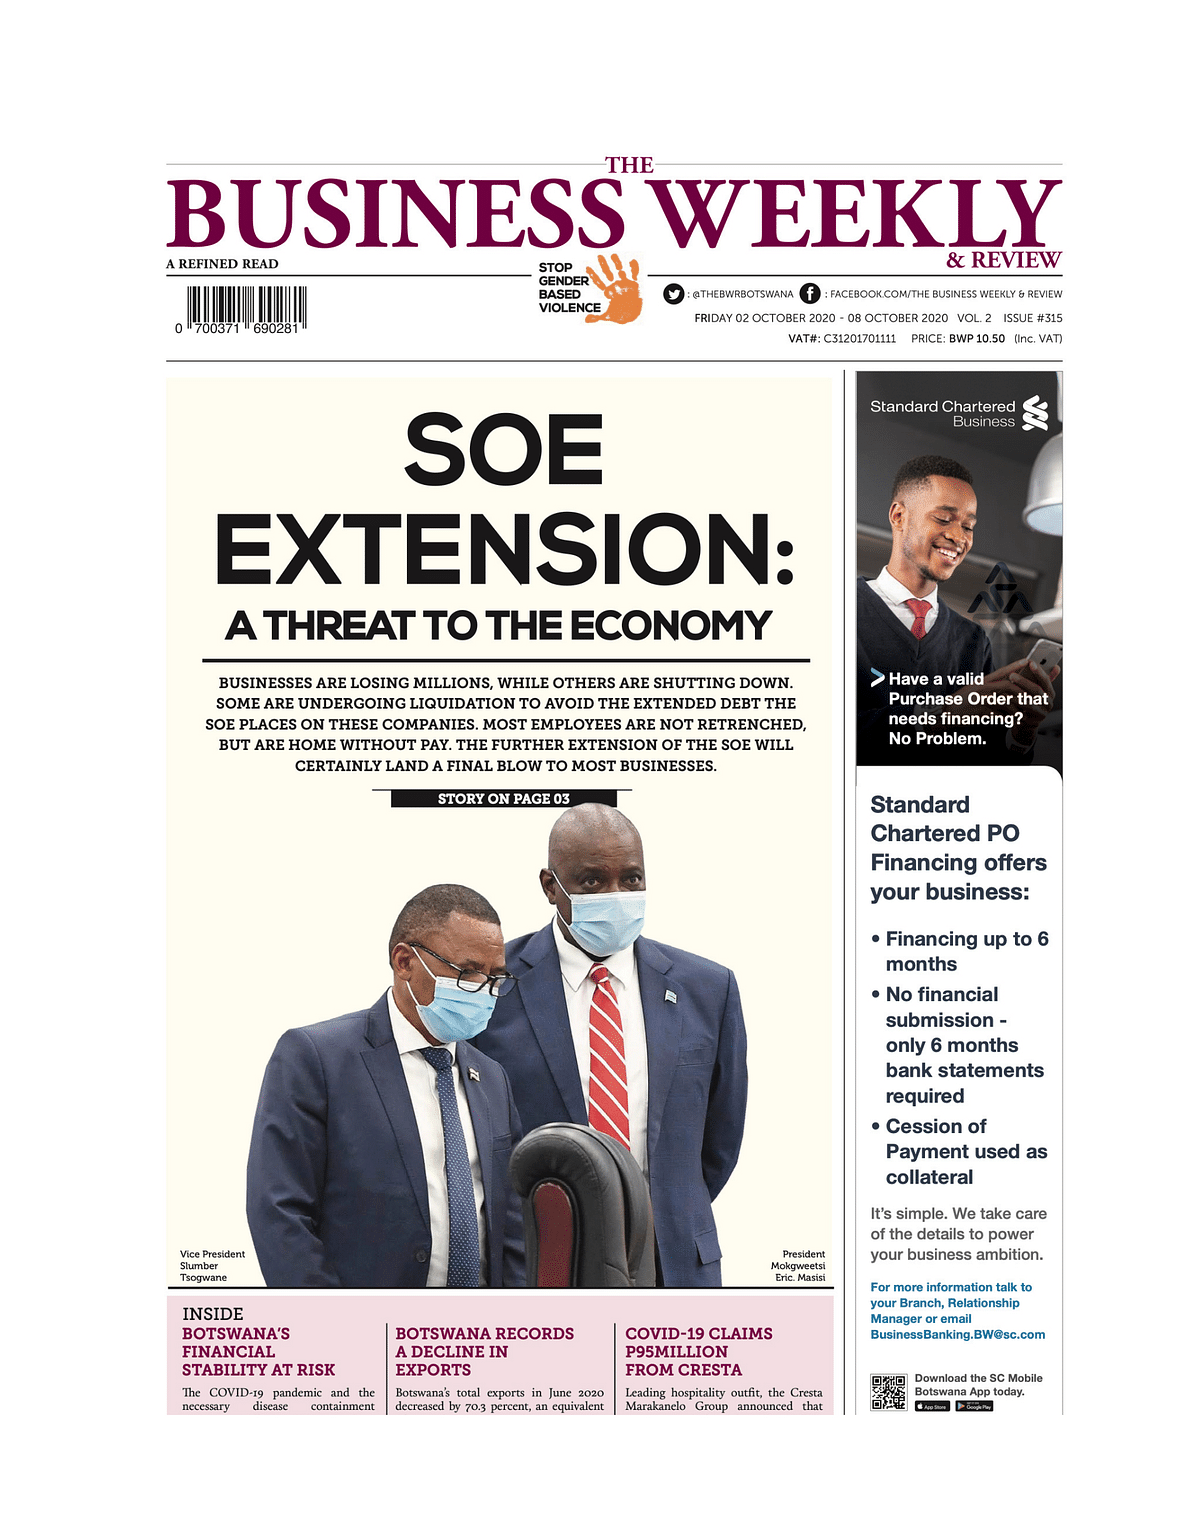 The Business Weekly & Review 2 October 2020